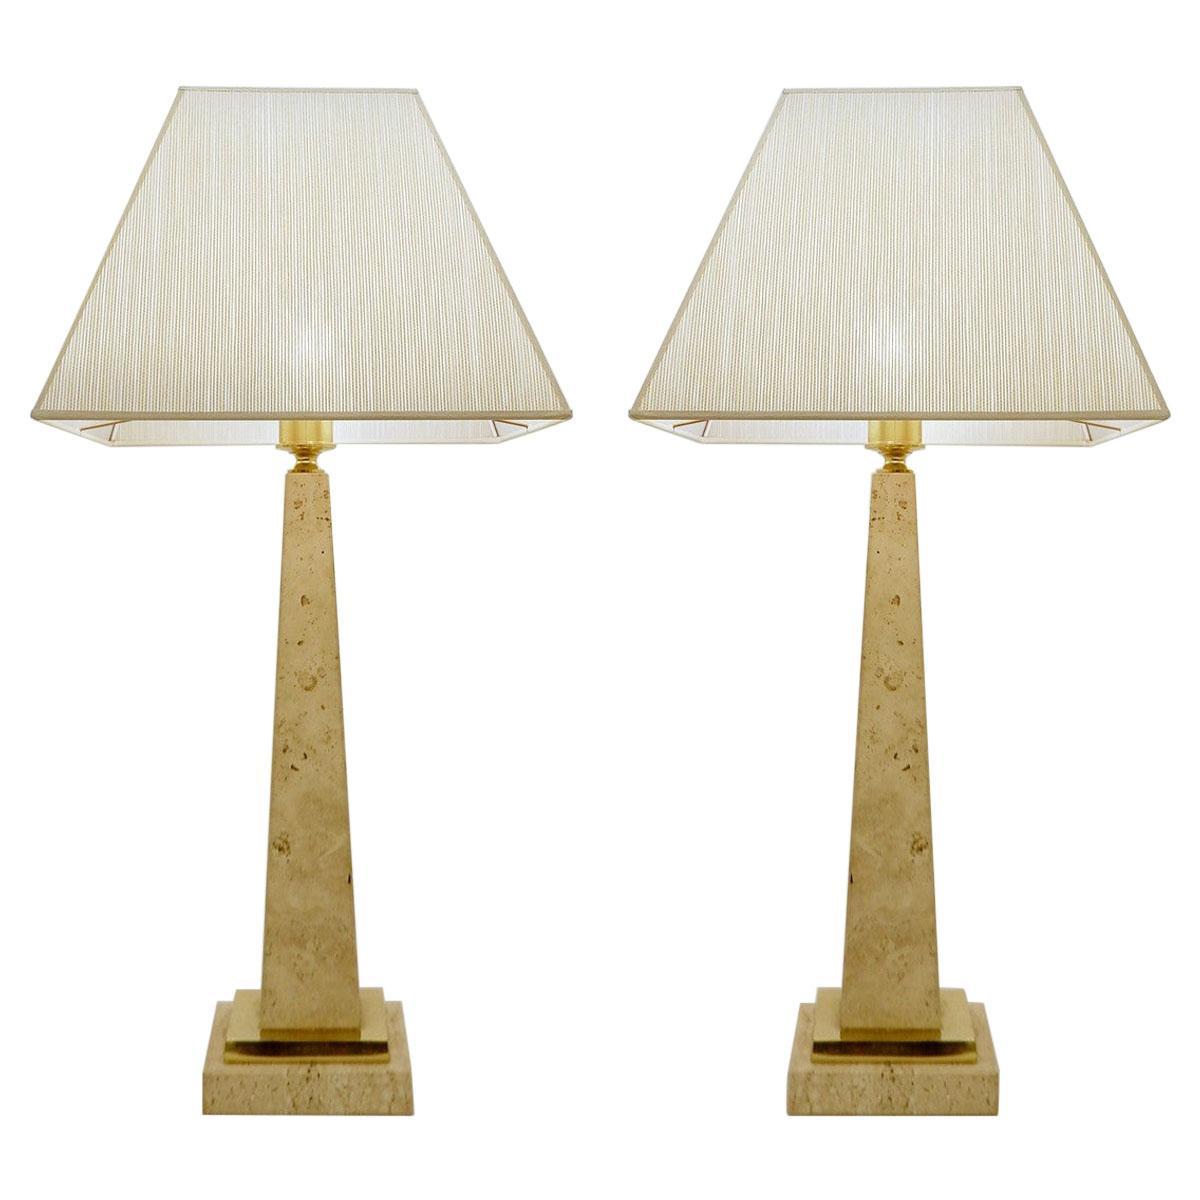 Pair of Travertine Obelisk Table Lamps